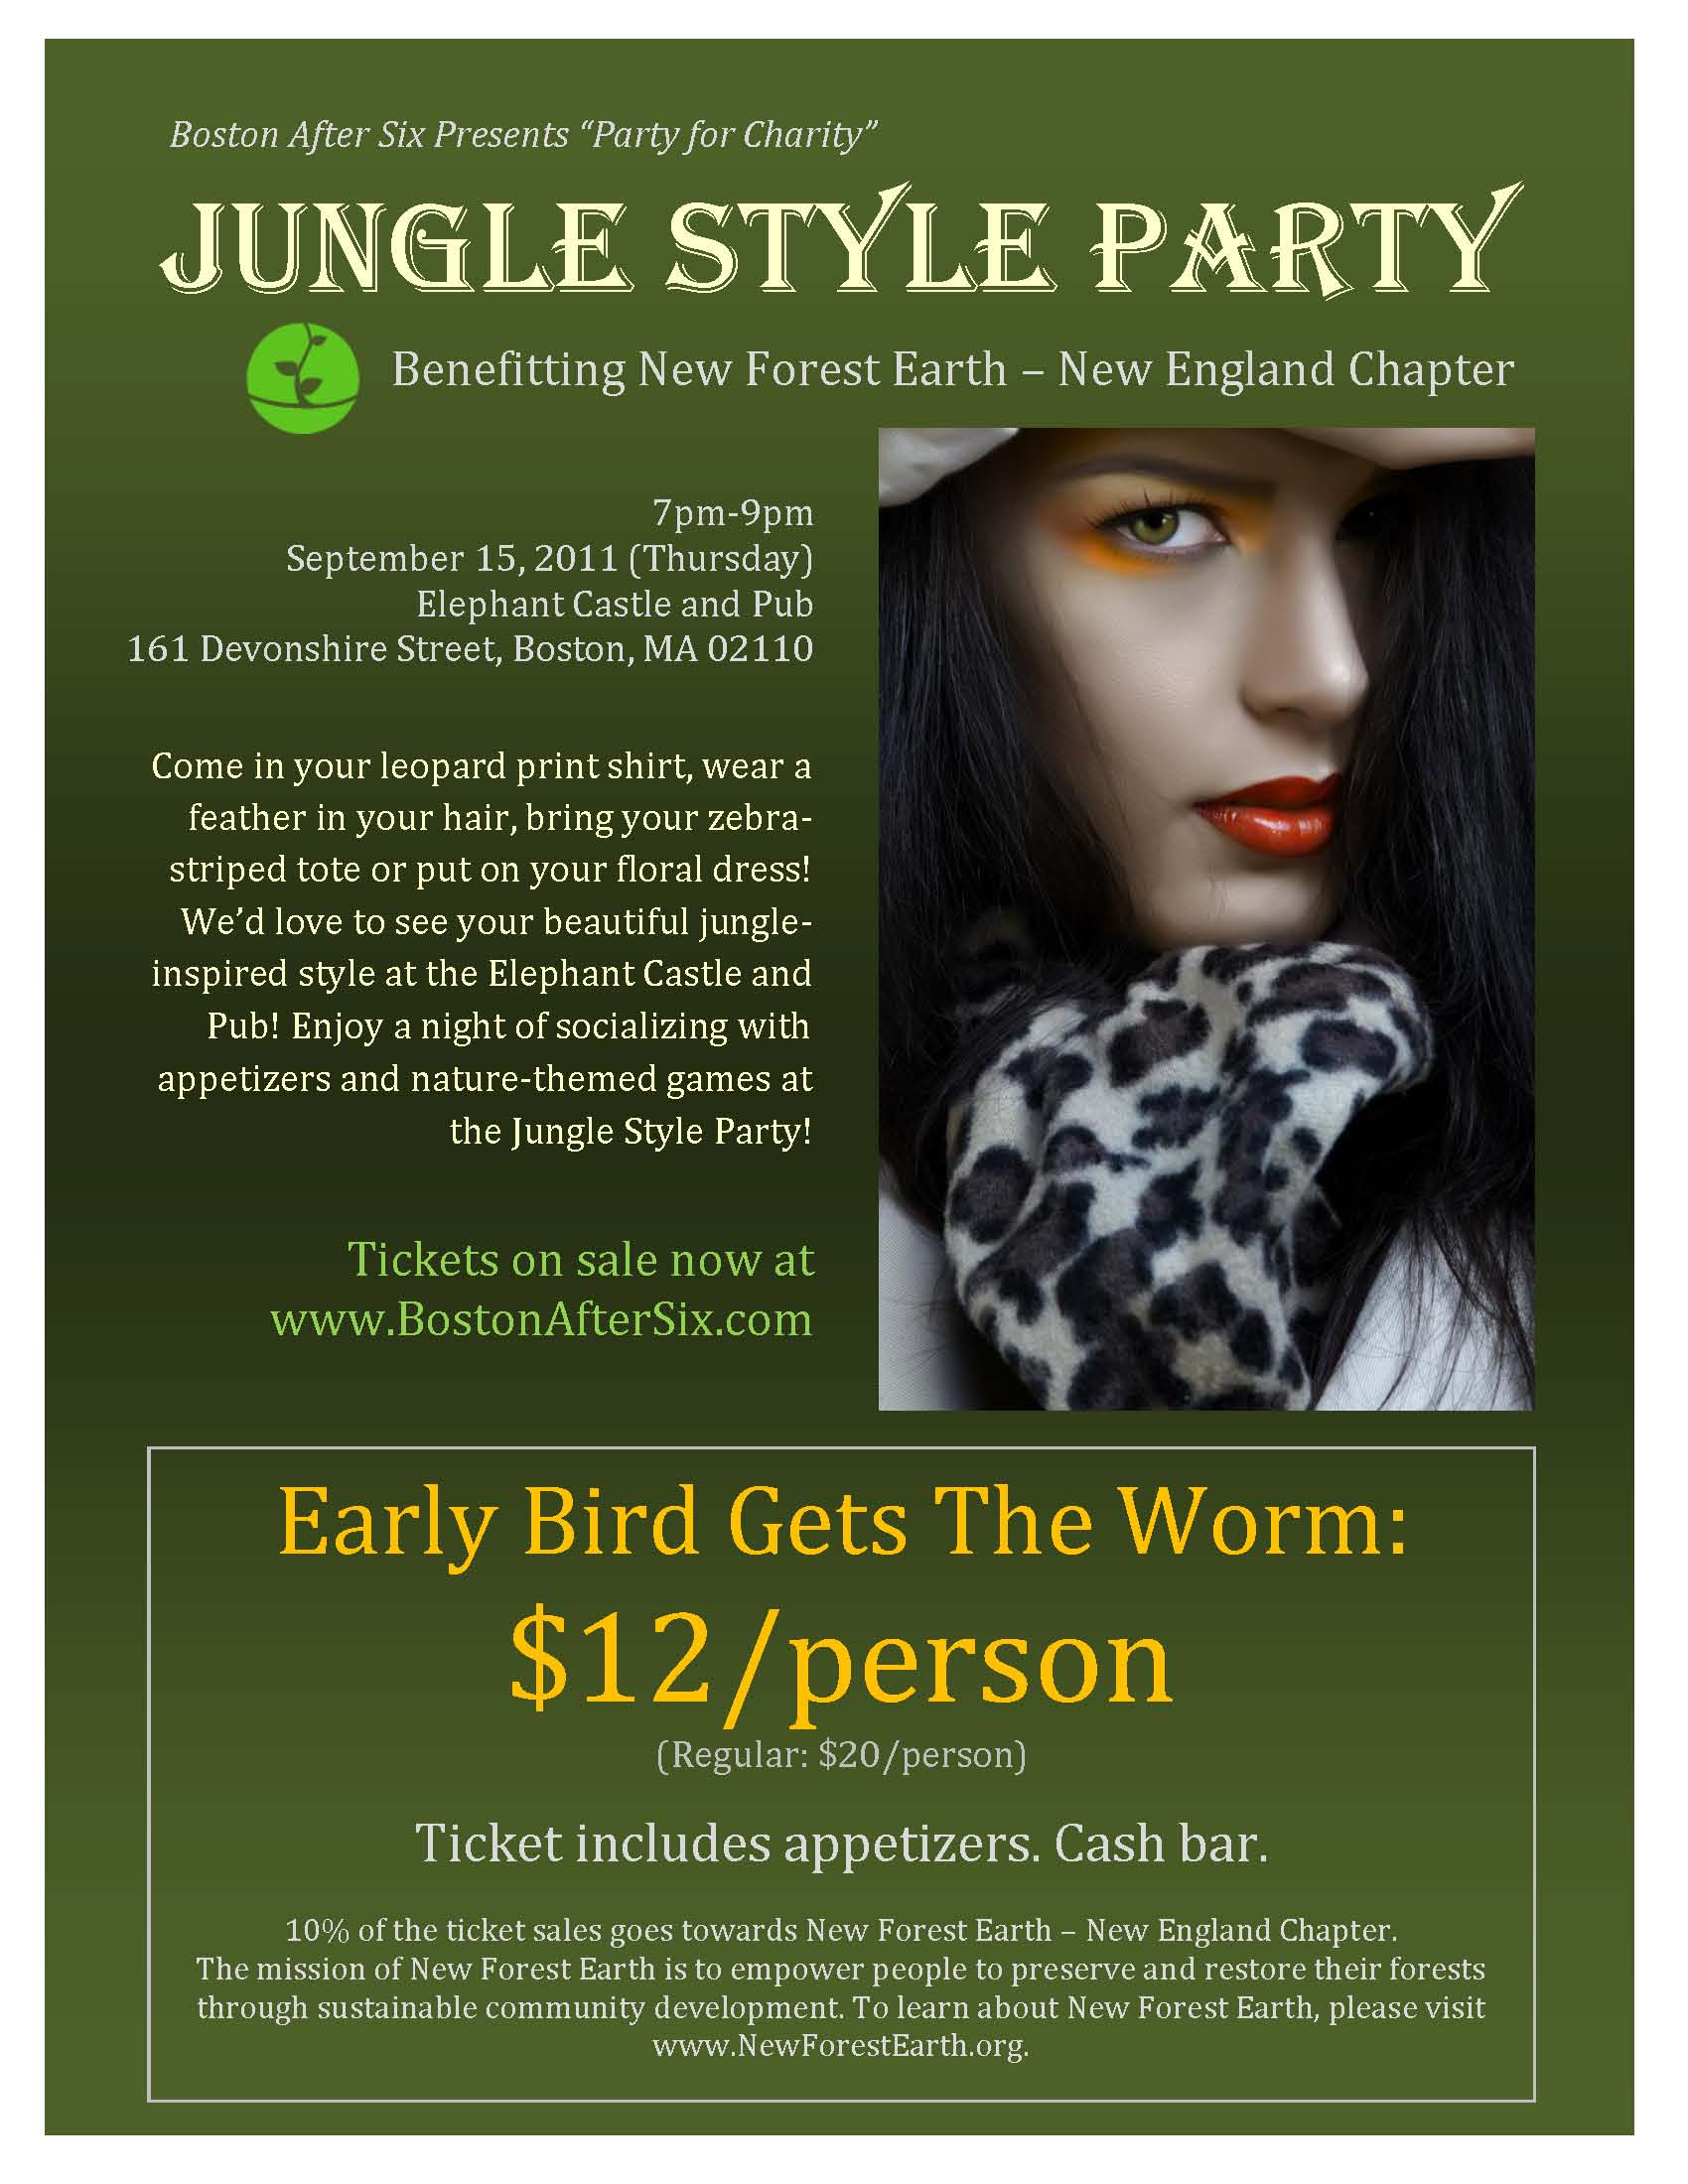 Jungle Style Party